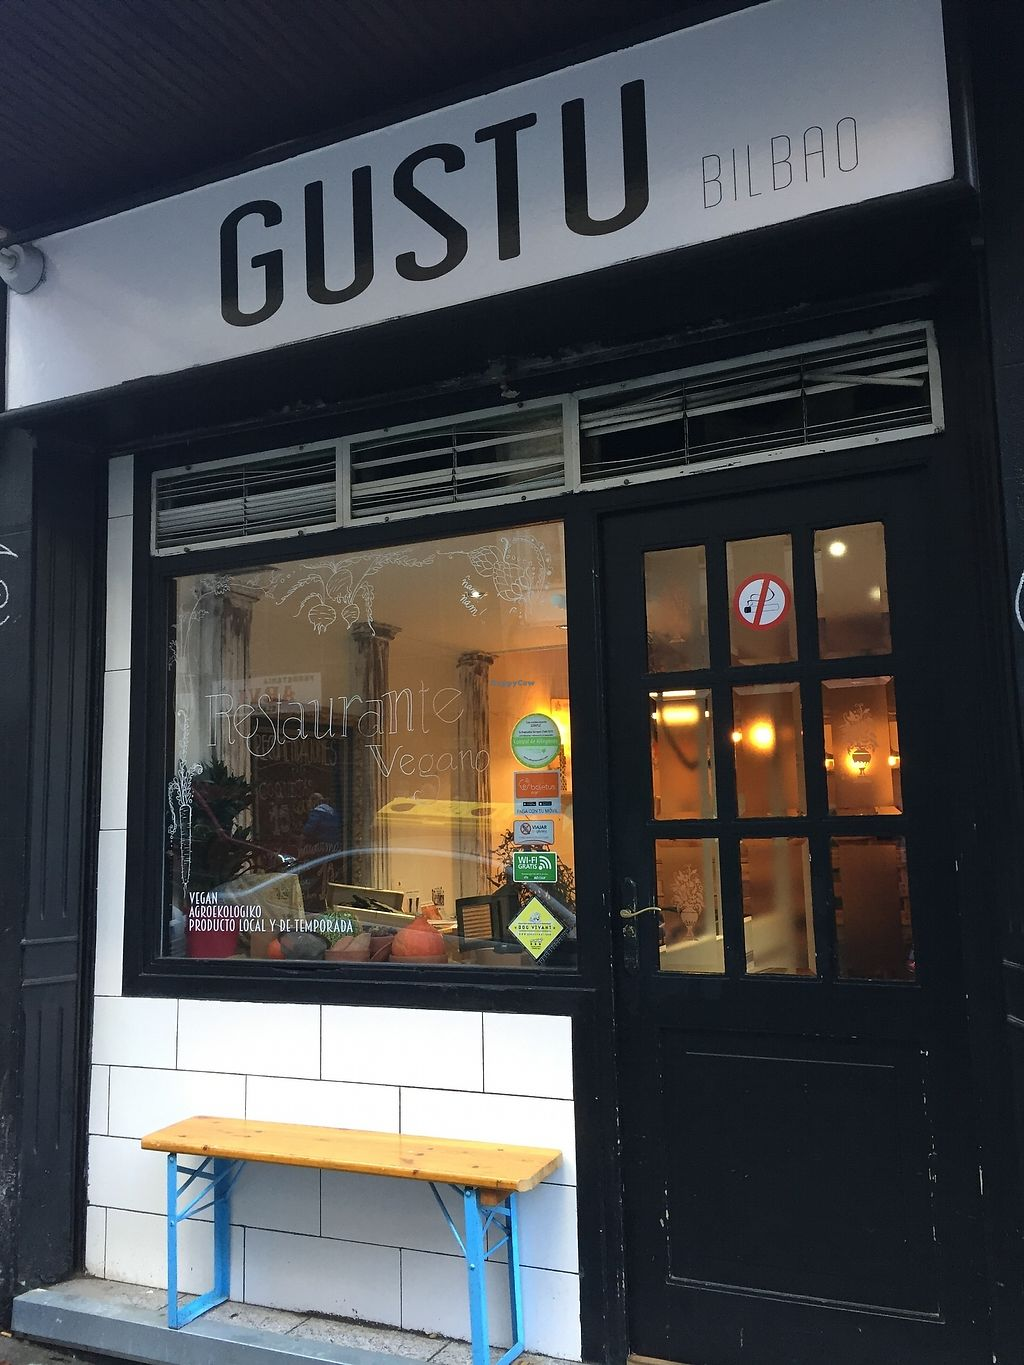 """Photo of Gustu Bilbao  by <a href=""""/members/profile/StevieSurf"""">StevieSurf</a> <br/>Gusto exterior  <br/> December 24, 2017  - <a href='/contact/abuse/image/67915/338627'>Report</a>"""